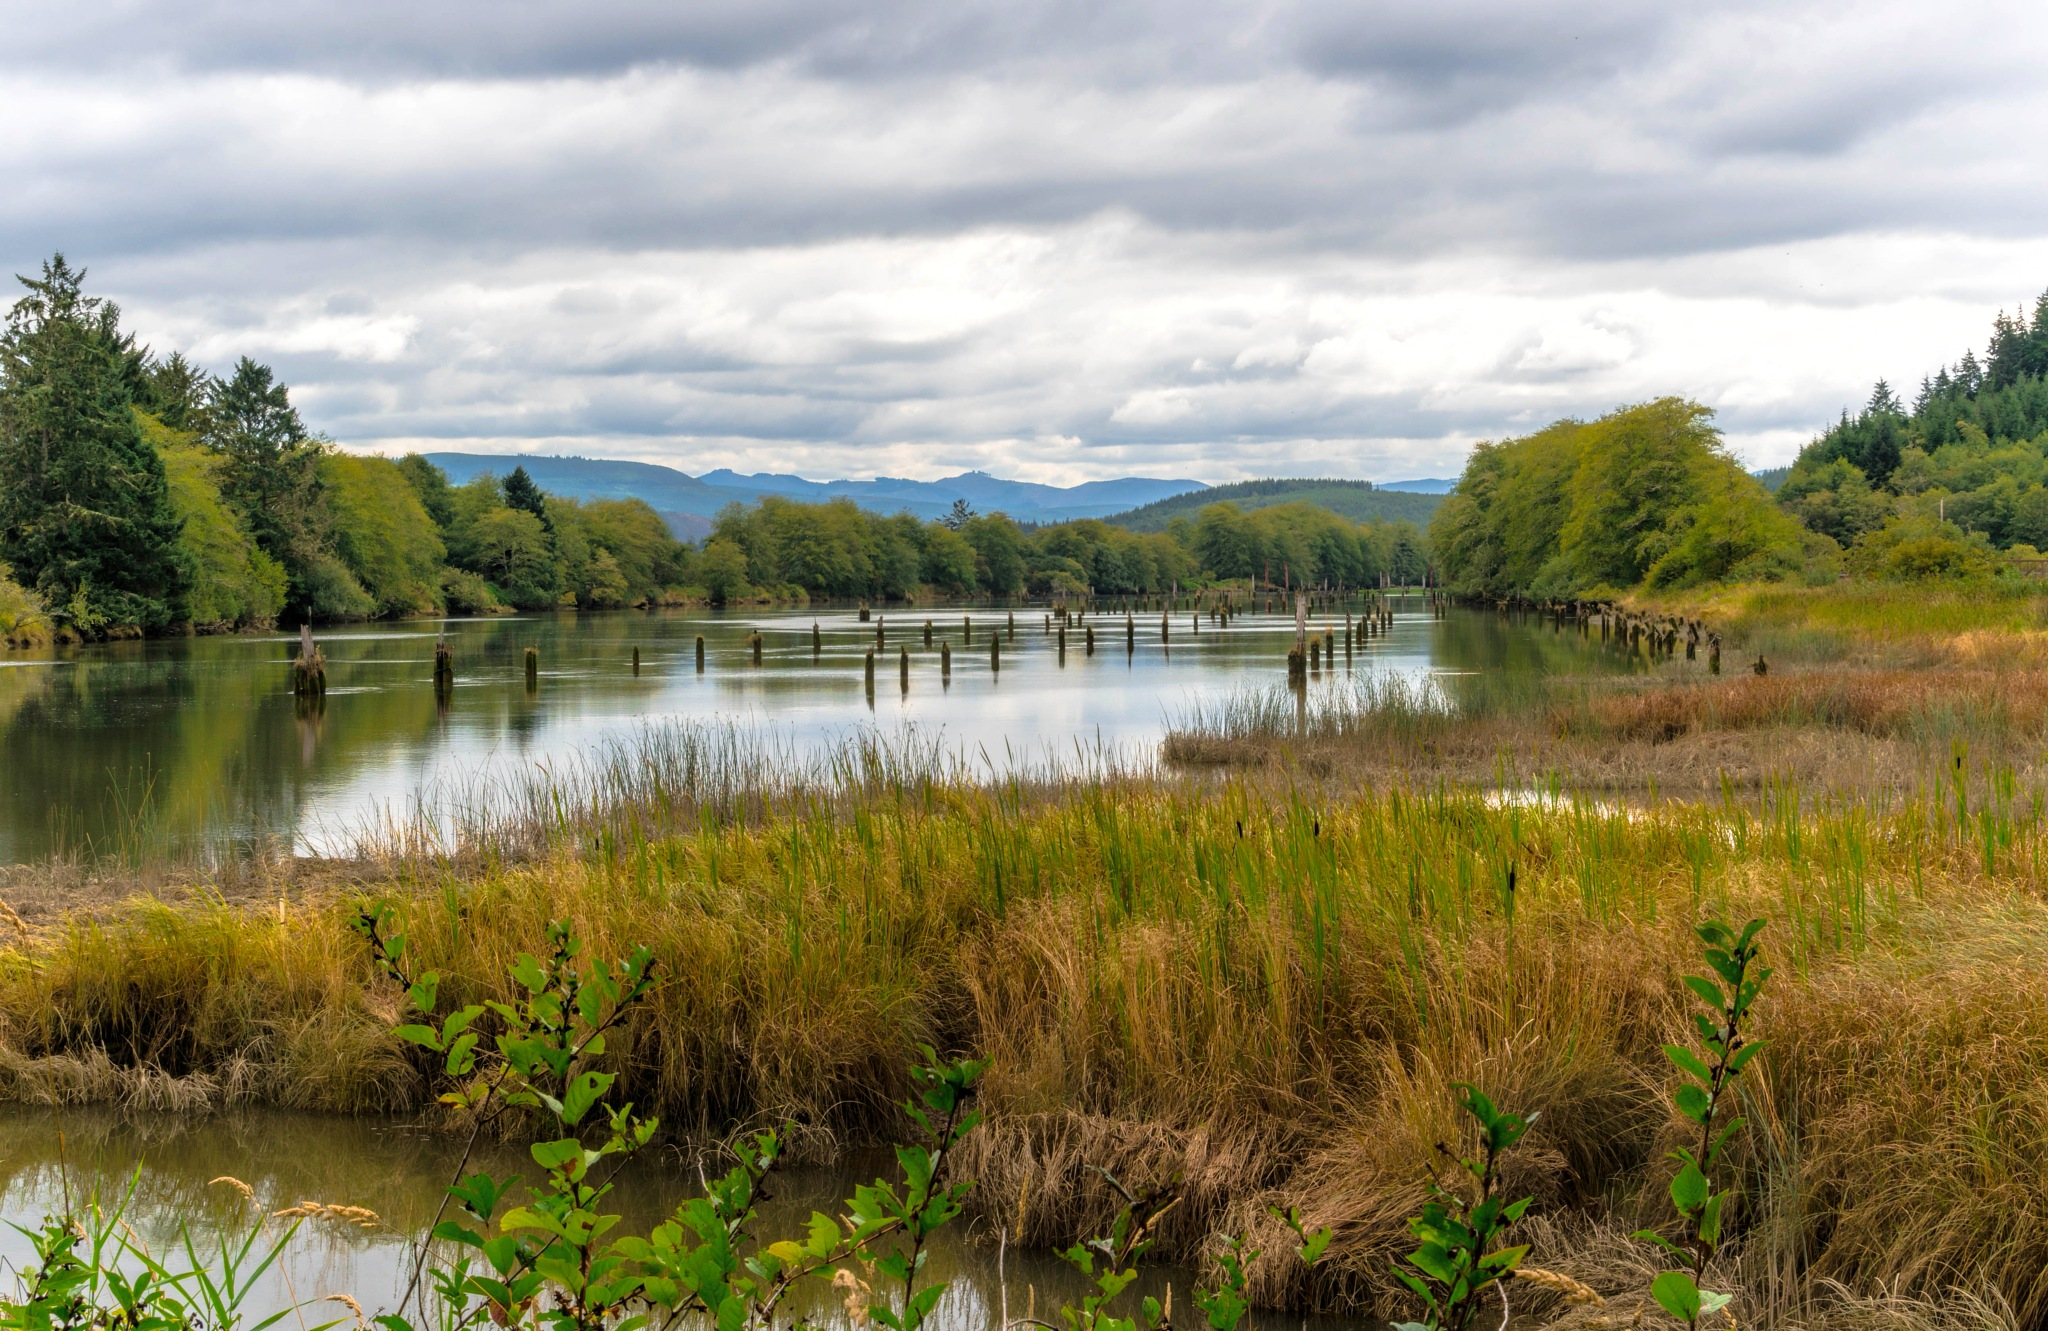 The River at Fort Clatsop by mike hope